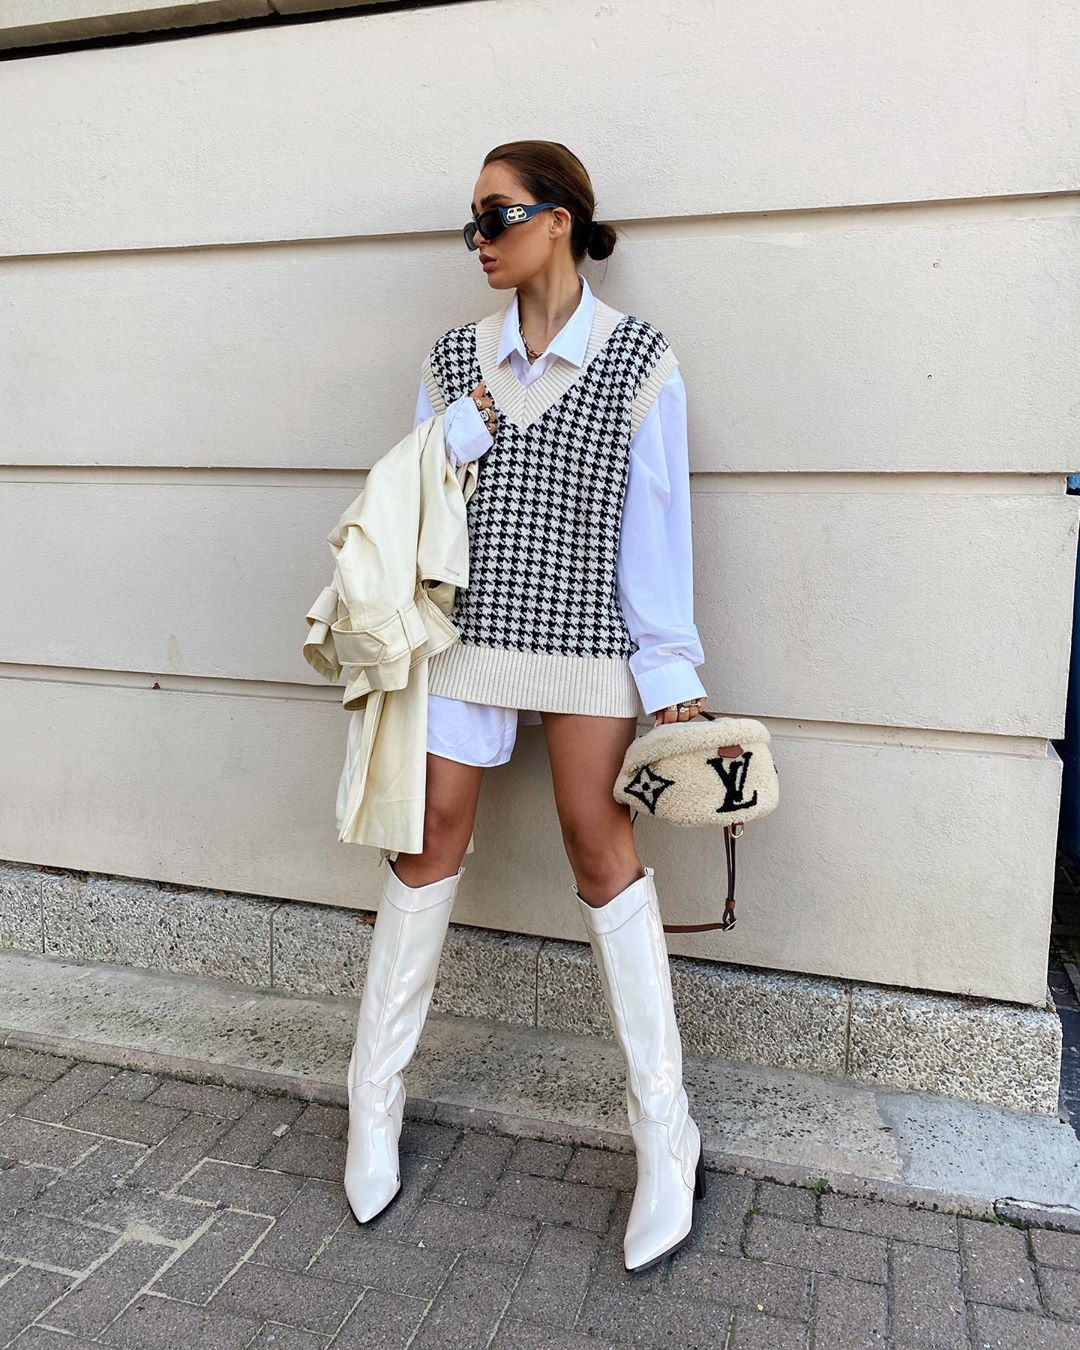 20 Pairs of White Boots To Buy for Fall and Beyond